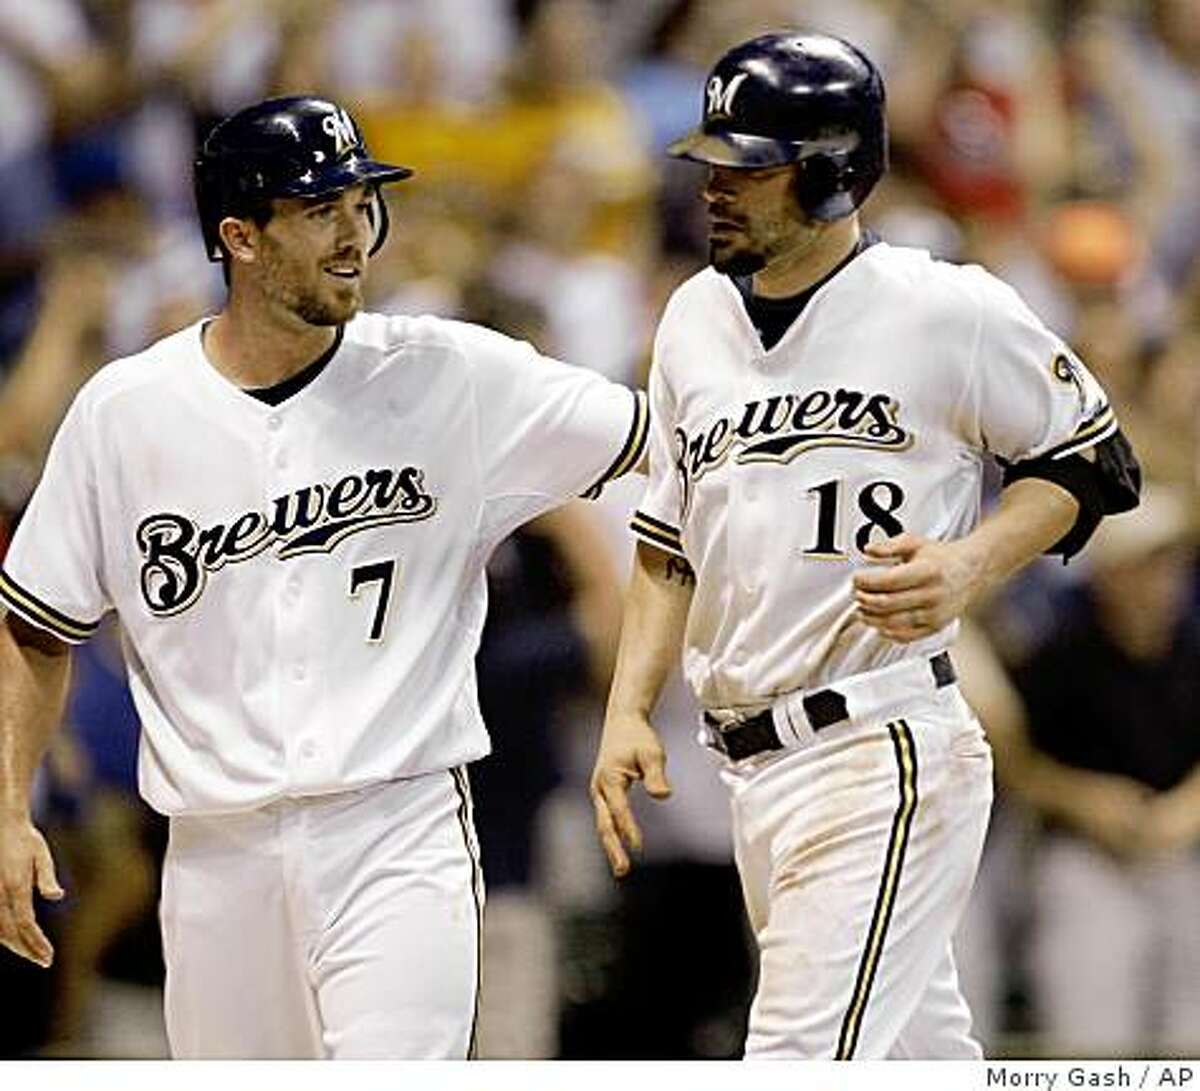 Milwaukee Brewers' J.J. Hardy (7) congratulates Jason Kendall (18) during the eighth inning of a baseball game against the Minnesota Twins on Wednesday, June 24, 2009, in Milwaukee. Hardy scored on a double by Kendall who scored on a throwing error. The Brewers won 4-3. (AP Photo/Morry Gash)